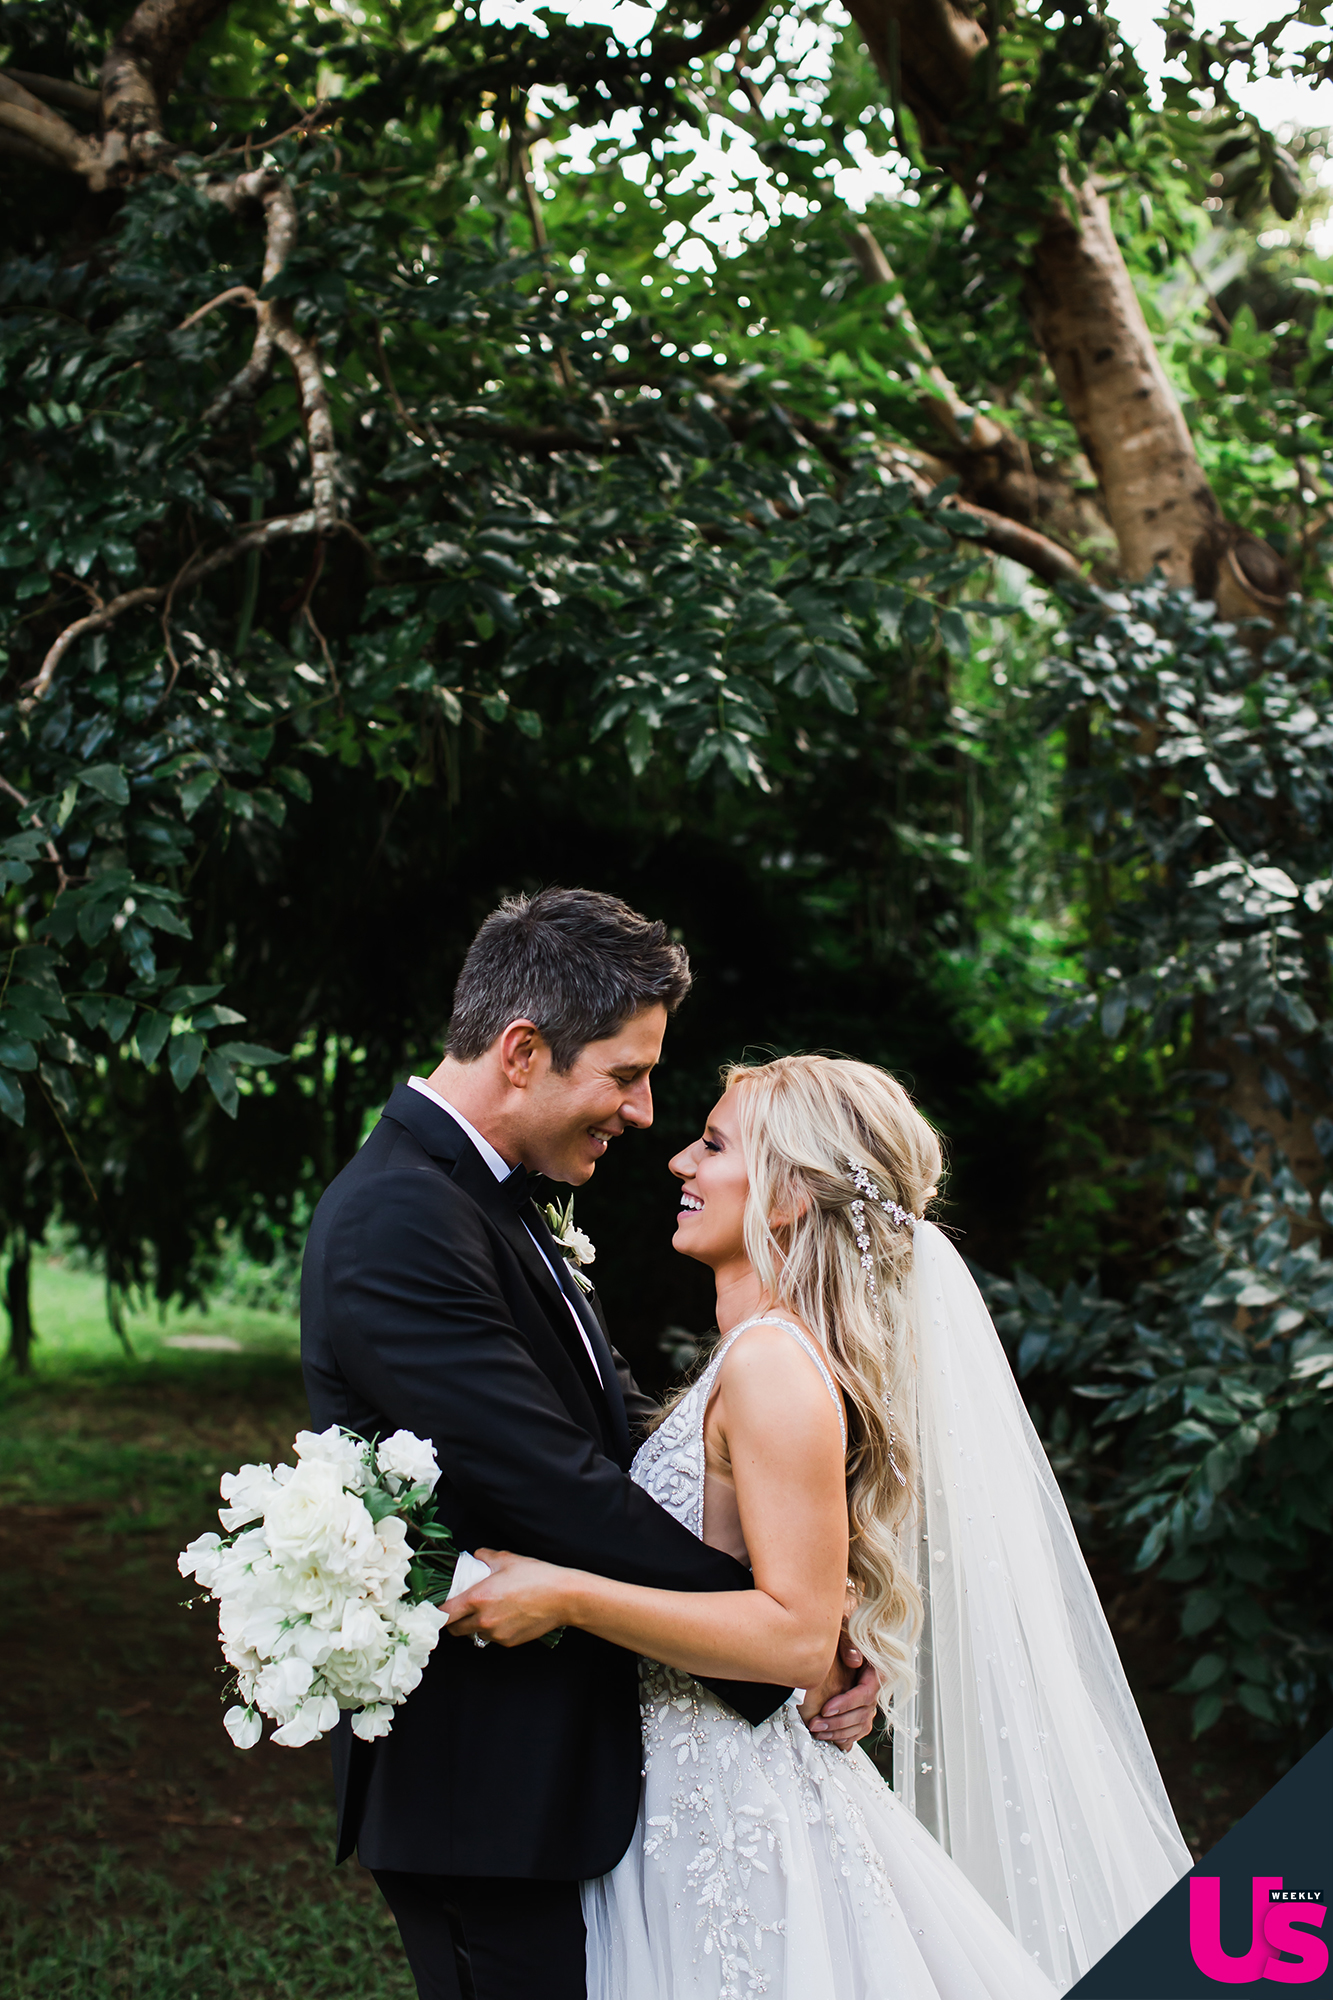 Arie-Luyendyk-Jr. -and-Lauren-Burnham-Wedding - The Netherlands native was surprised that Burnham chose all-white for the bridesmaids, but was most in awe of his wife's gown.